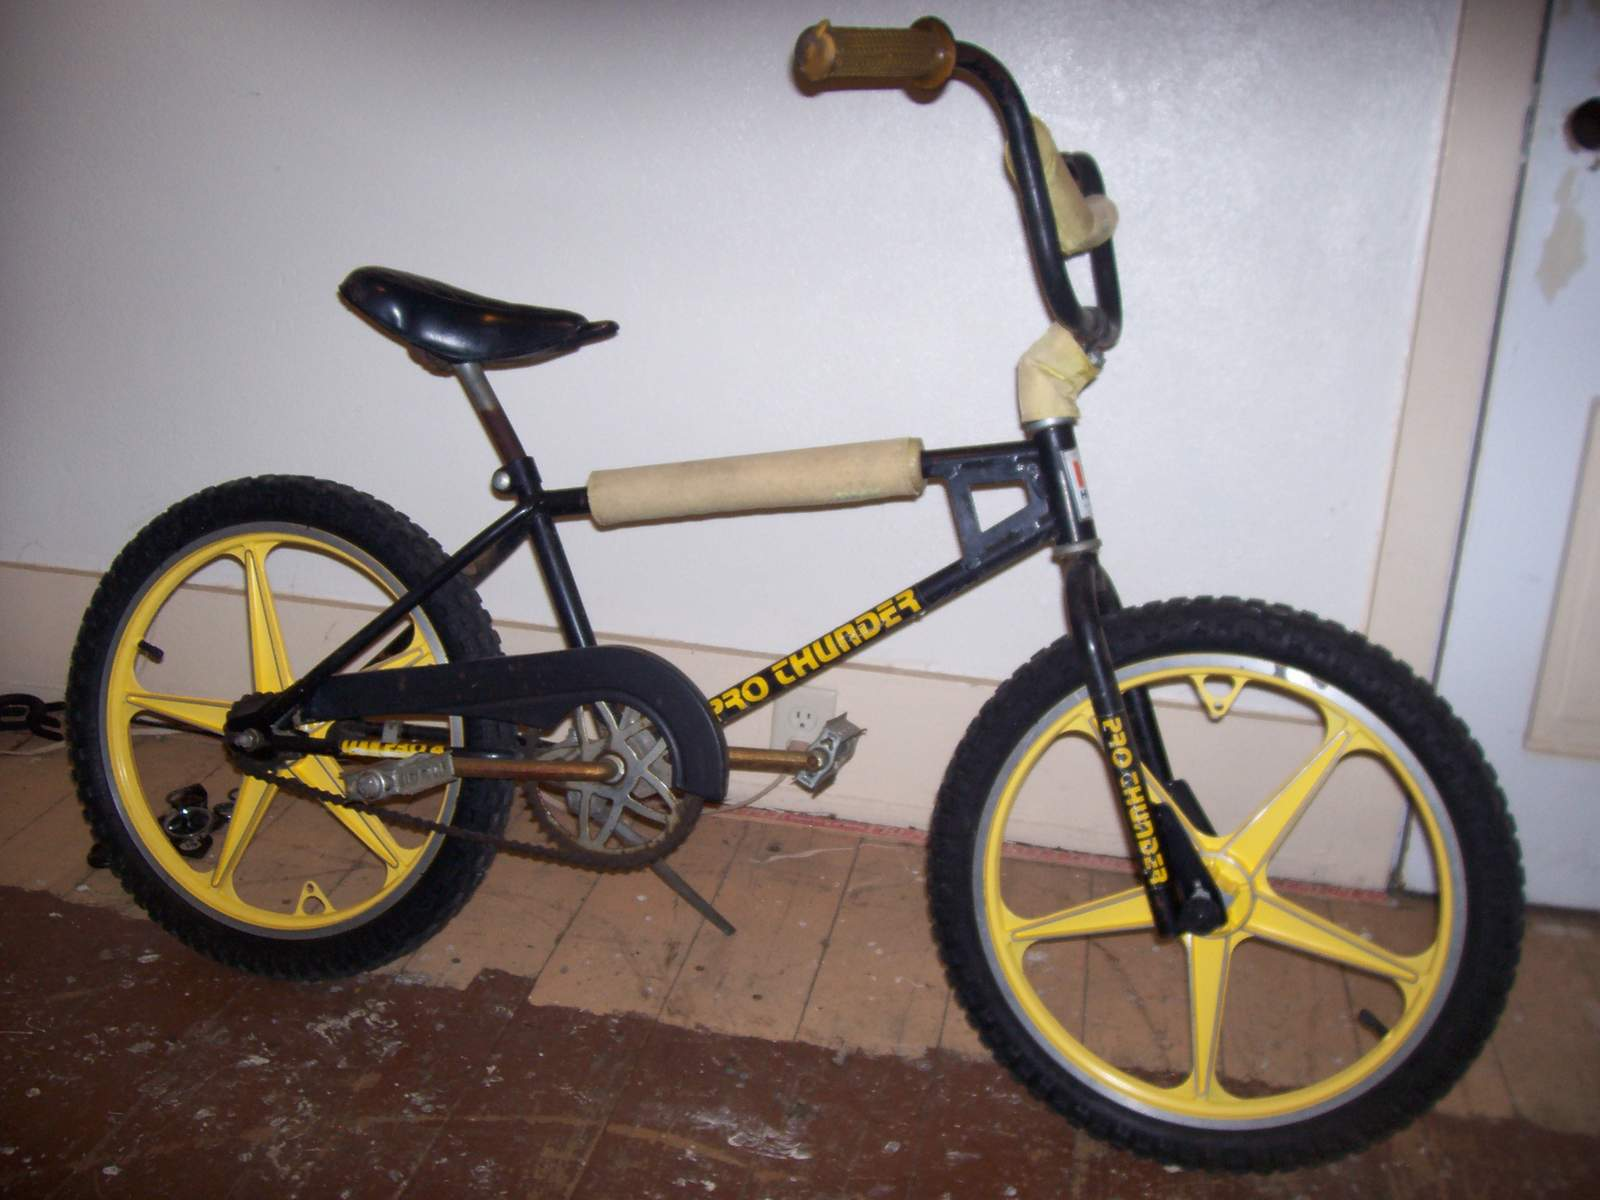 https://s3.amazonaws.com/uploads.bmxmuseum.com/user-images/61851/100_577657ebacf645.jpg